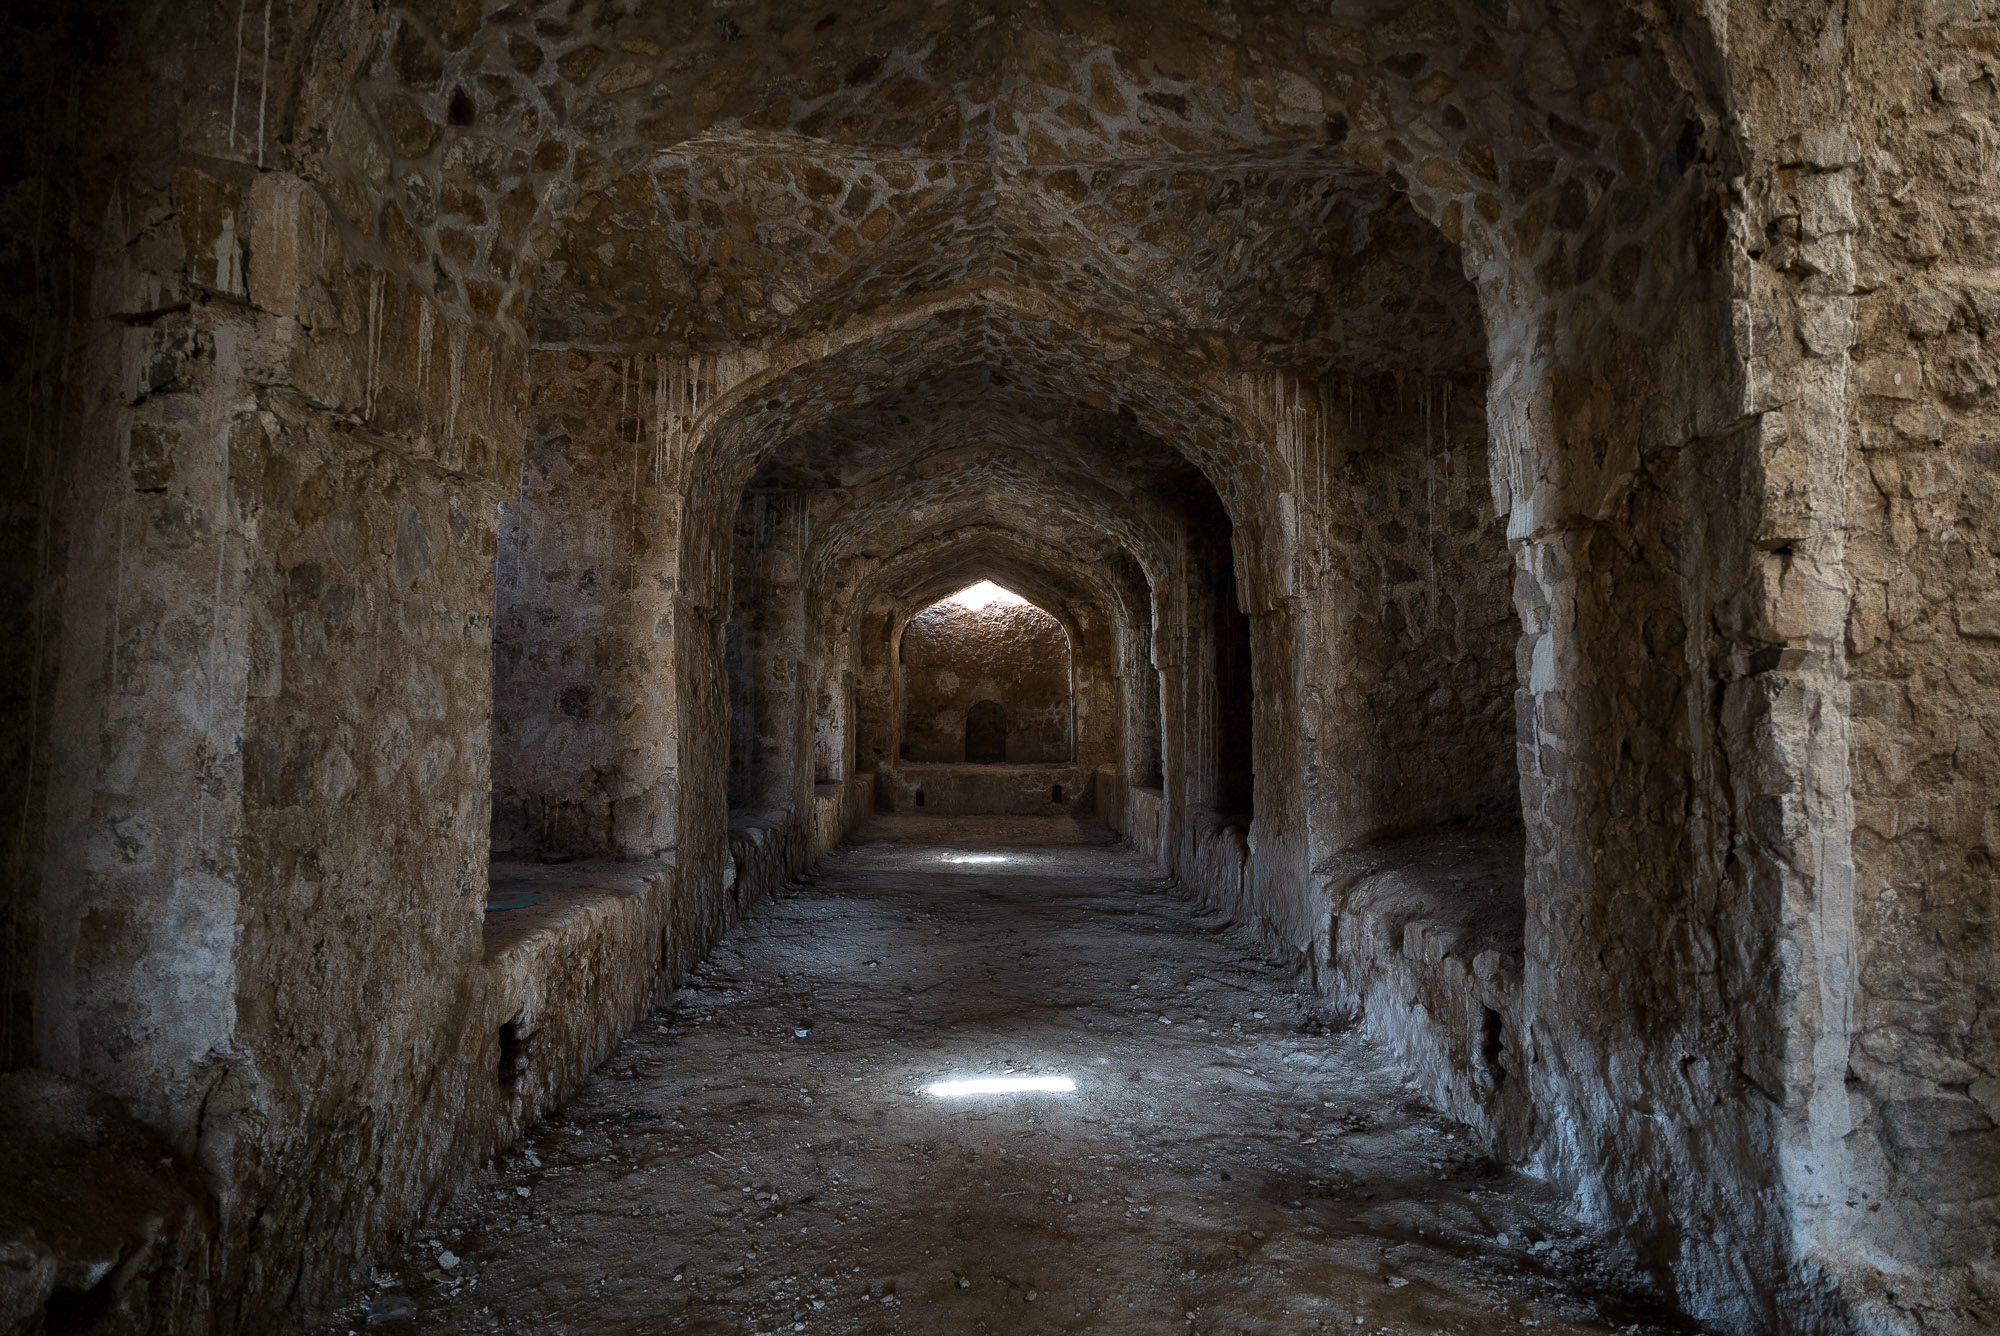 inside the ruined caravanserai